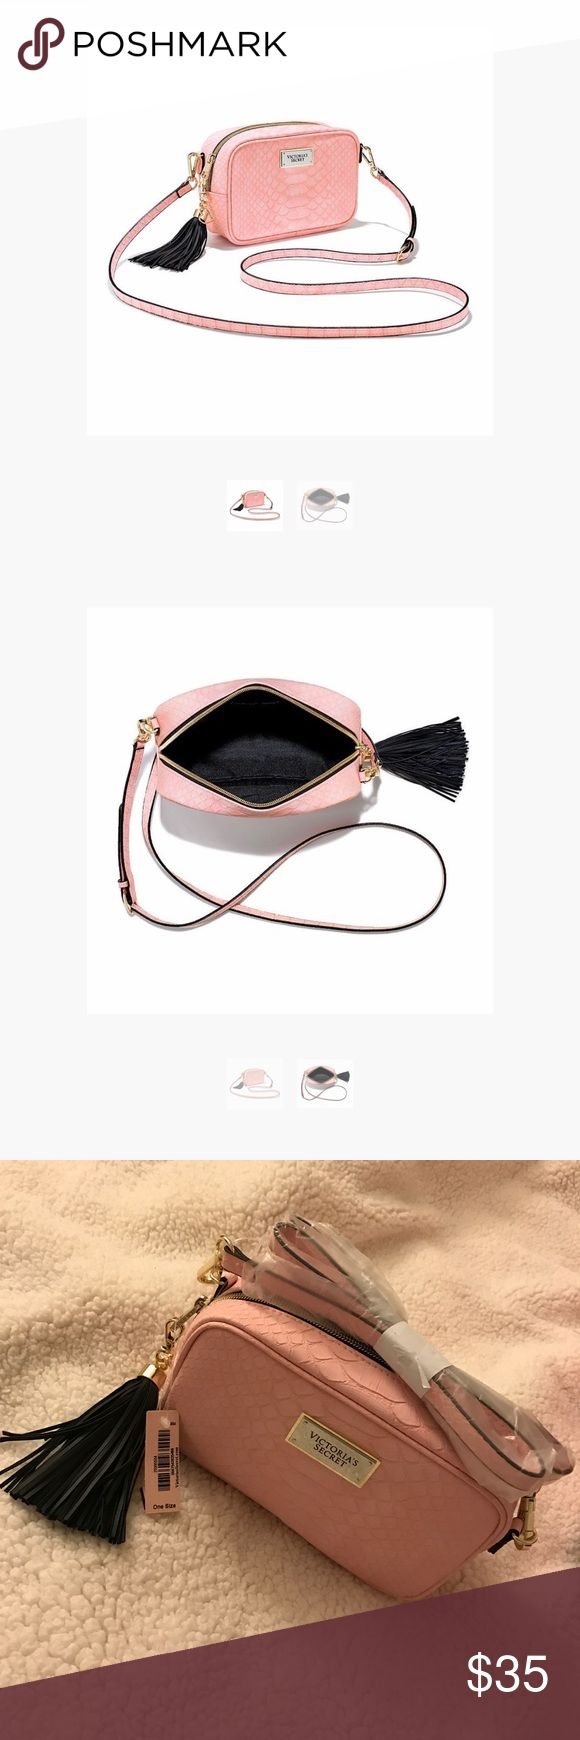 🌸VS light pink python print crossbody ▪️Brand New with Tag  ♥️NO TRADE - Please use offer feature to make offers. Thanks Victoria's Secret Bags Crossbody Bags